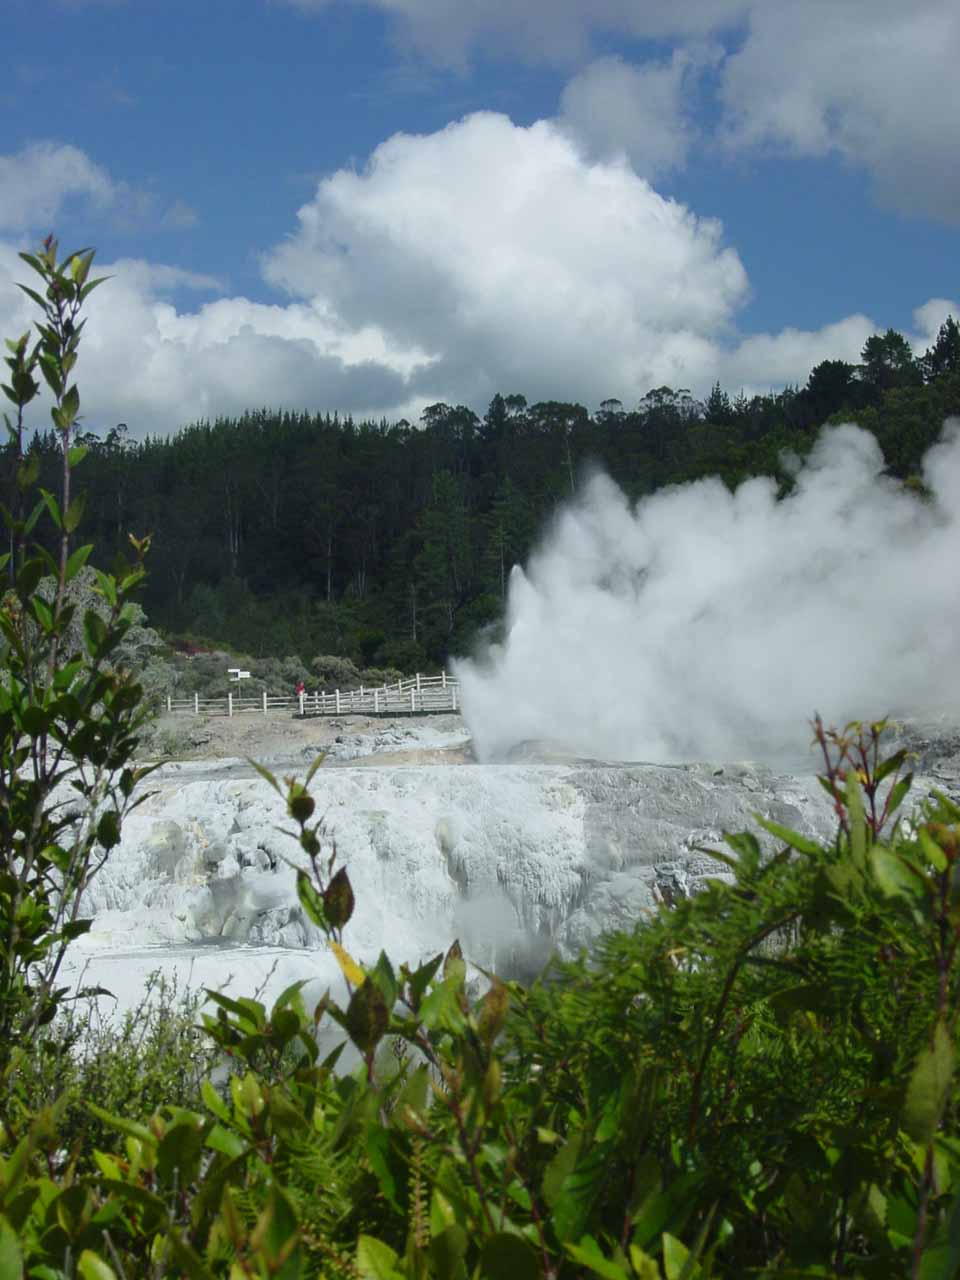 Looking in the direction of where Prince of Wales and Pohutu Geyser are supposed to be